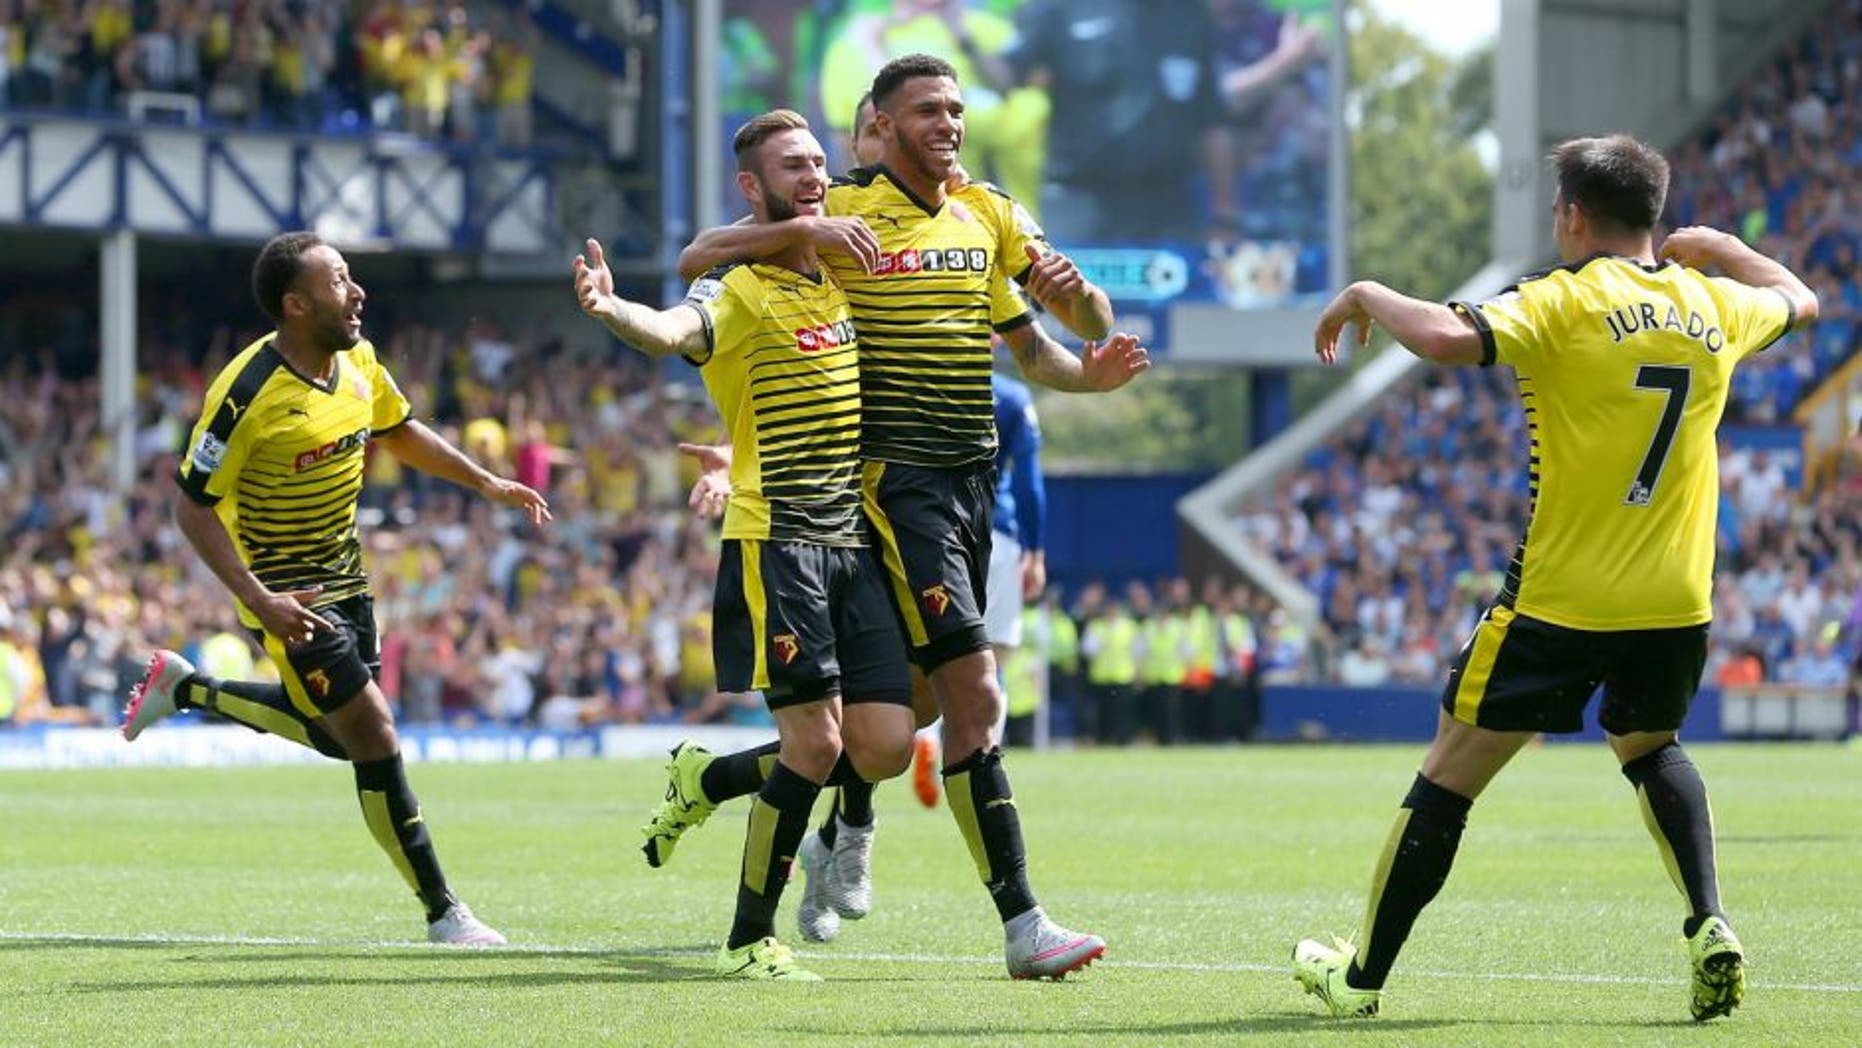 LIVERPOOL, ENGLAND - AUGUST 08: Miguel Layun of Watford celebrates scoring his team's first goal with his team mate Etienne Capoue during the Barclays Premier League match between Everton and Watford at Goodison Park on August 8, 2015 in Liverpool, England. (Photo by Jan Kruger/Getty Images)